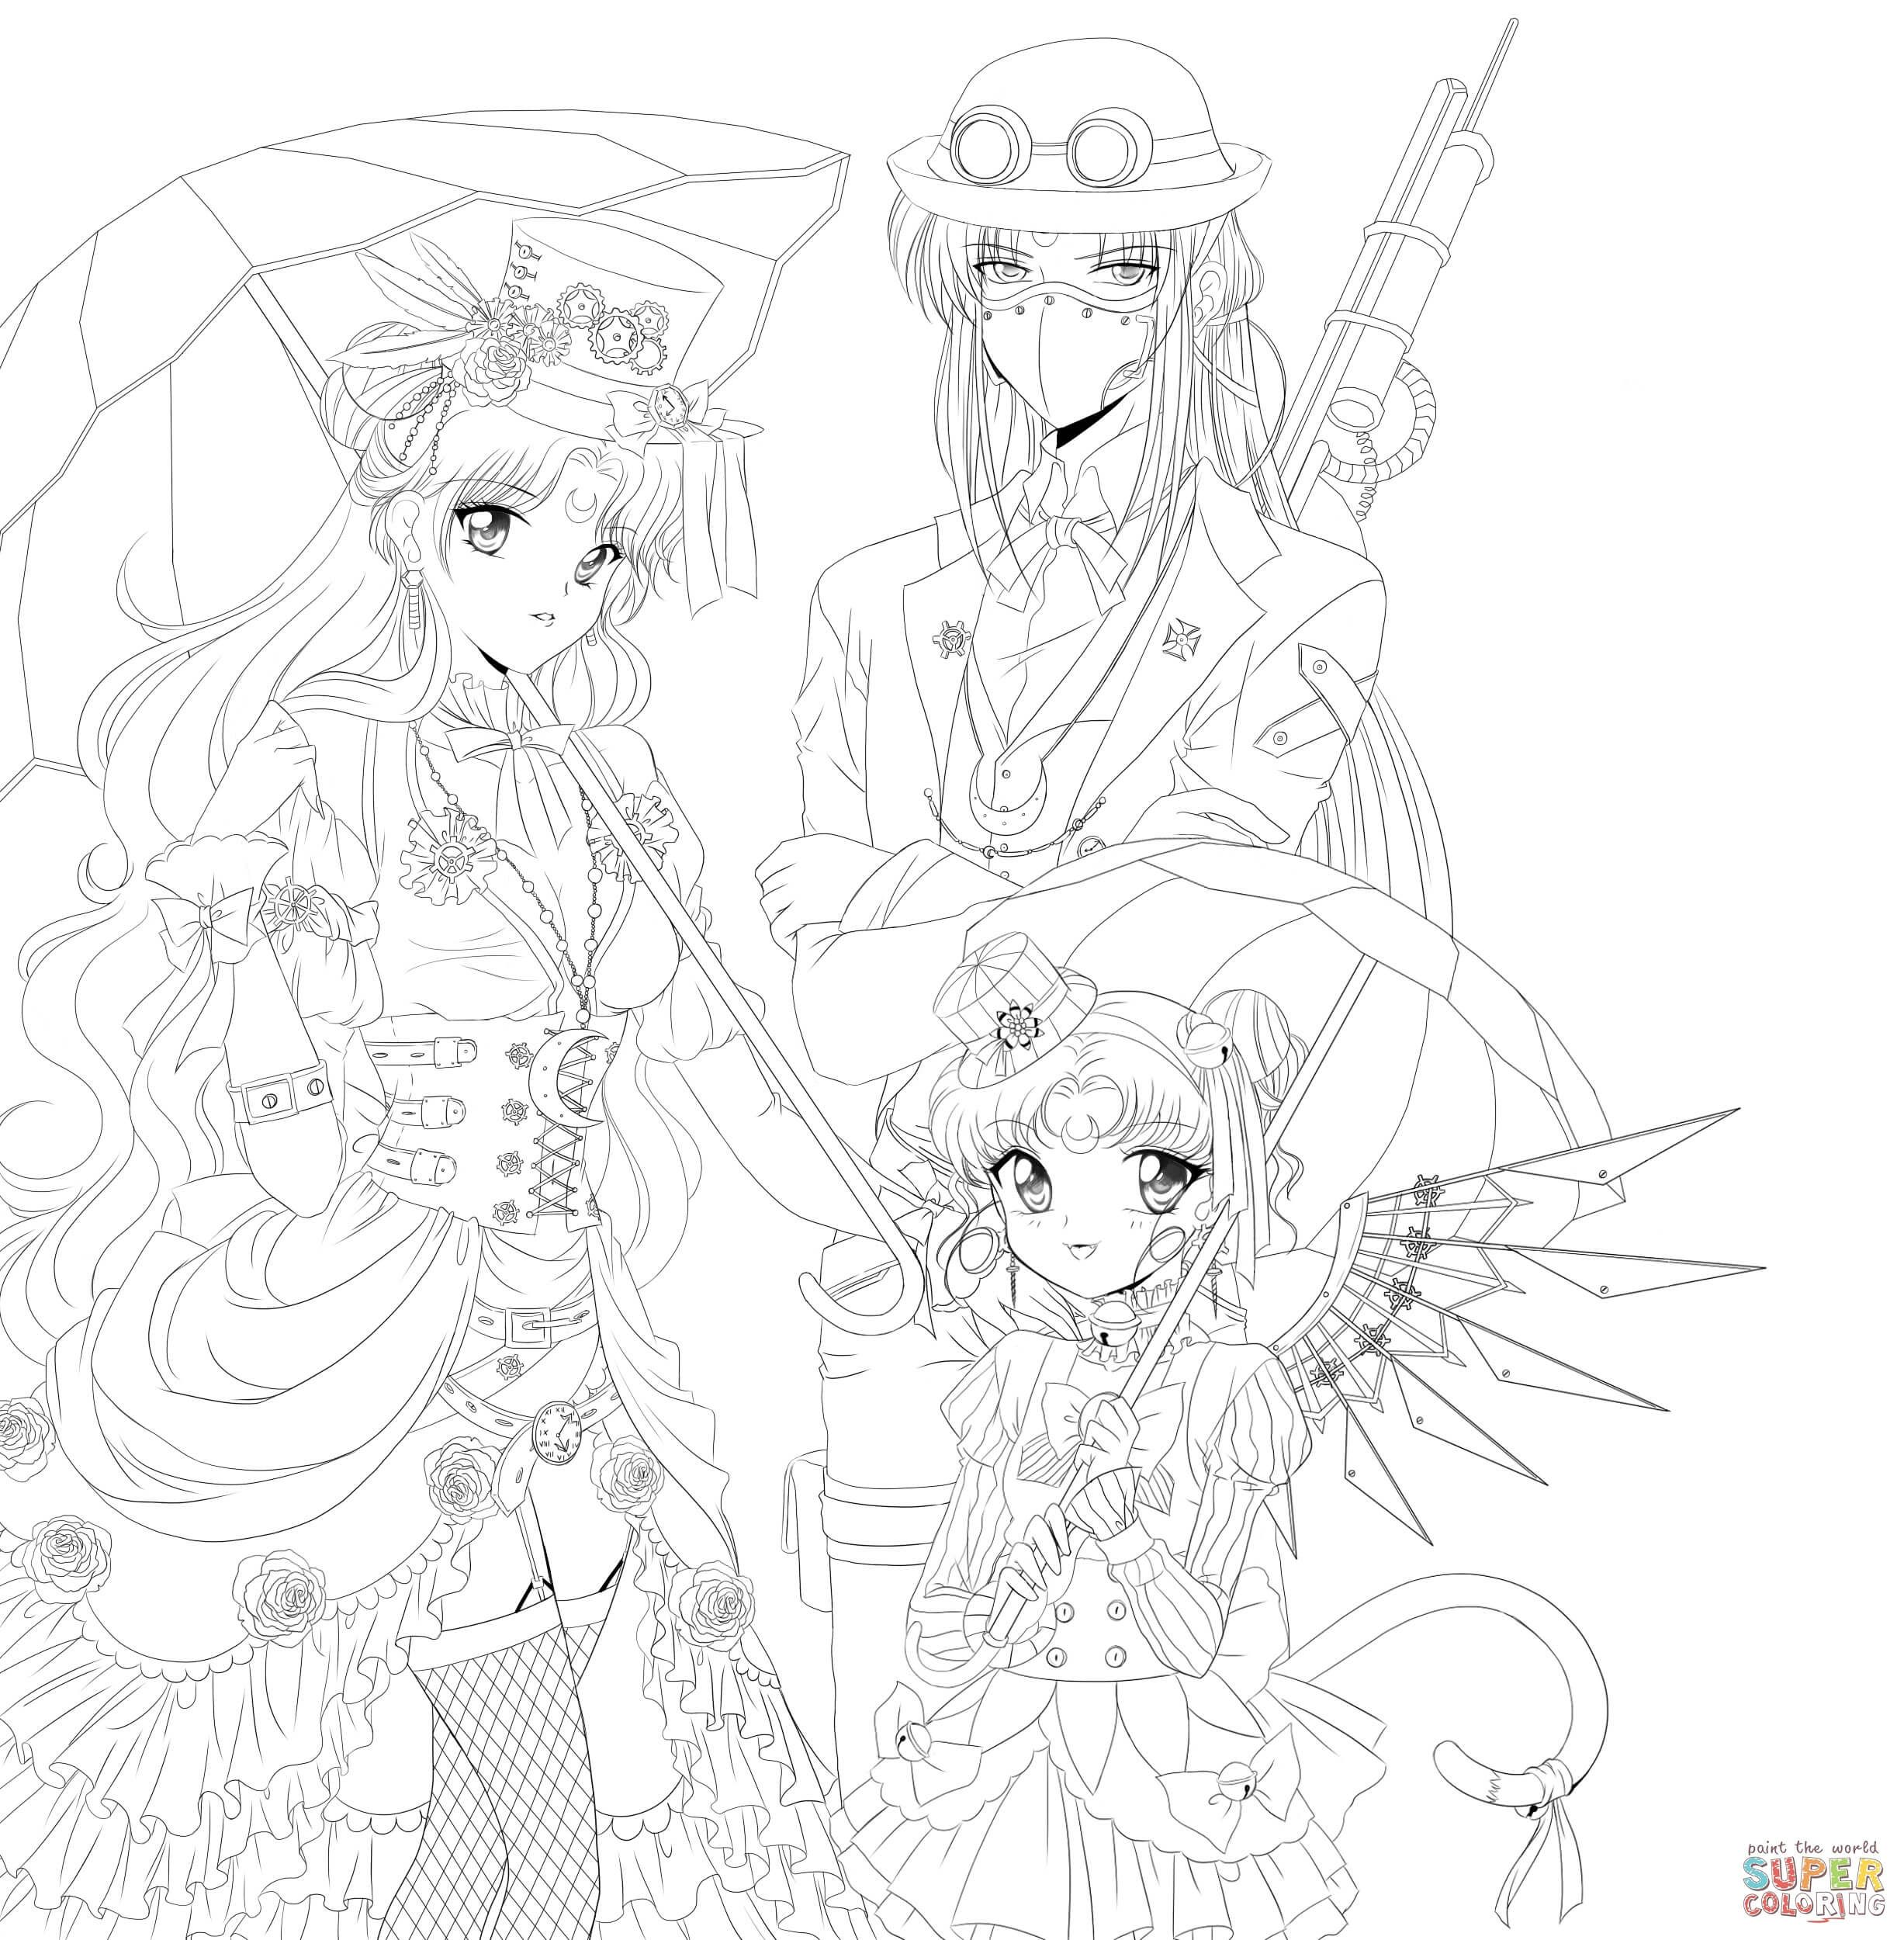 Steampunk Sailor Moon | Super Coloring | Sailor moon 15 | Pinterest